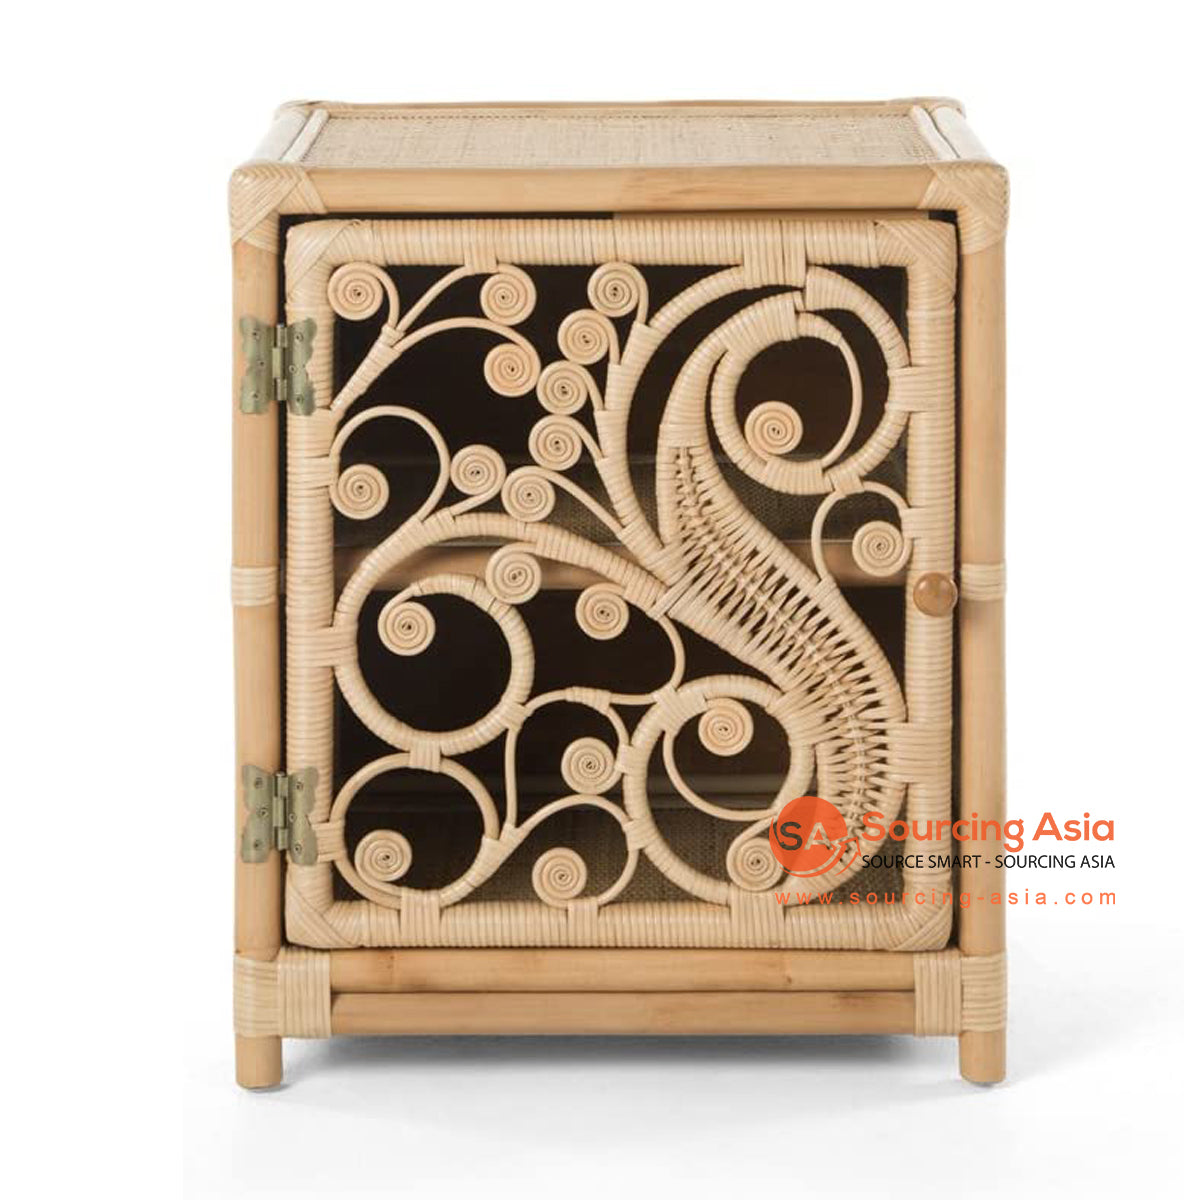 SHL200-2 NATURAL WOVEN RATTAN SIDE TABLE